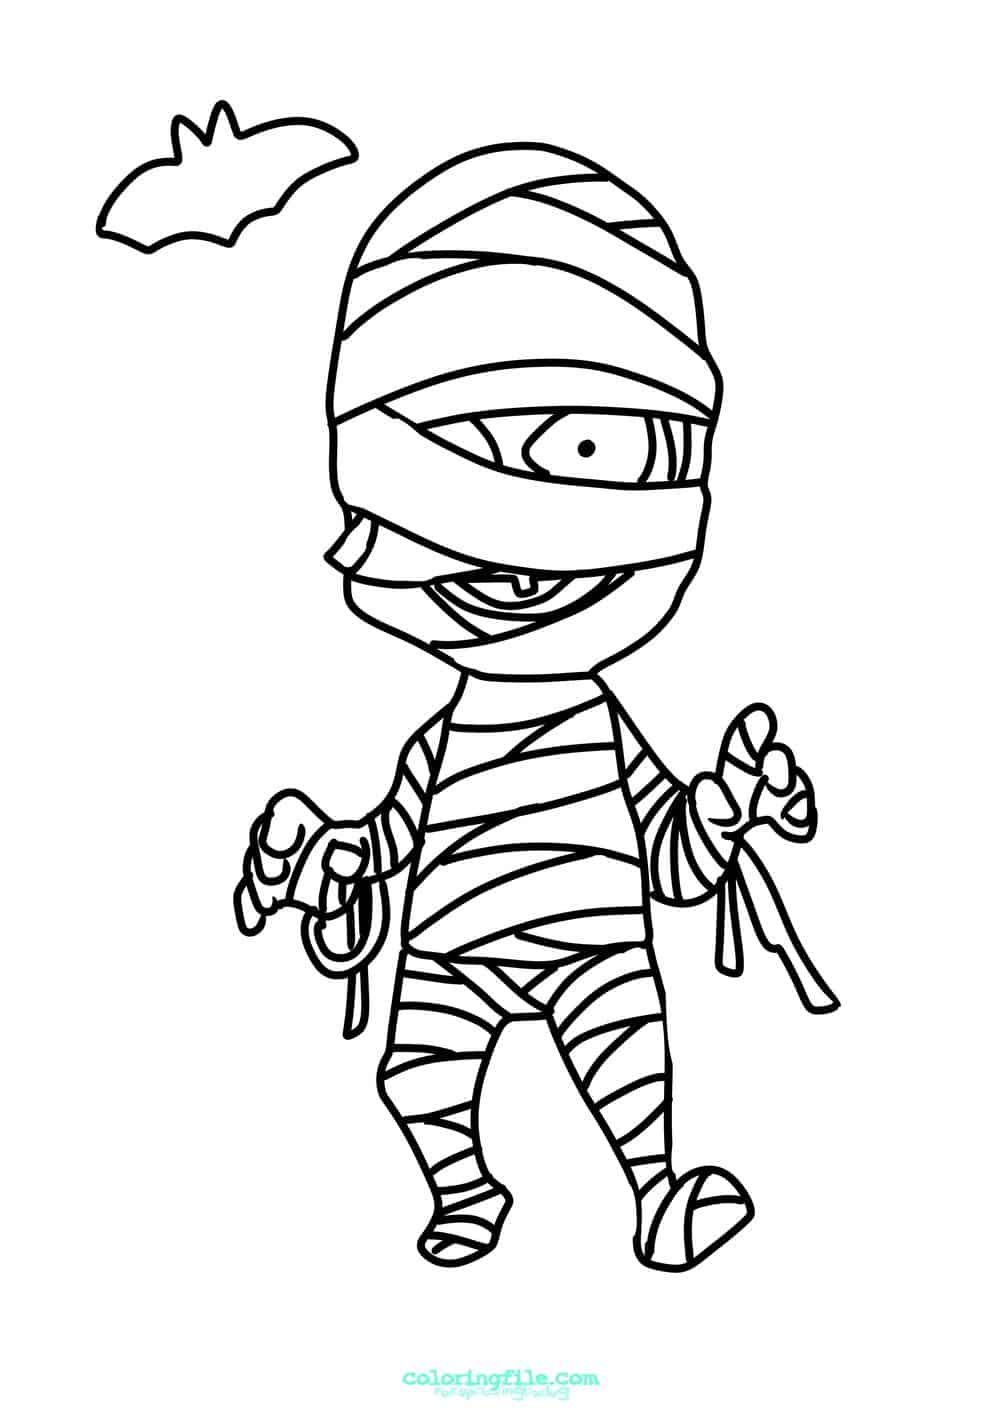 Halloween Mummy Boy Coloring Pages Halloween Coloring Pages Halloween Coloring Coloring Pages For Boys